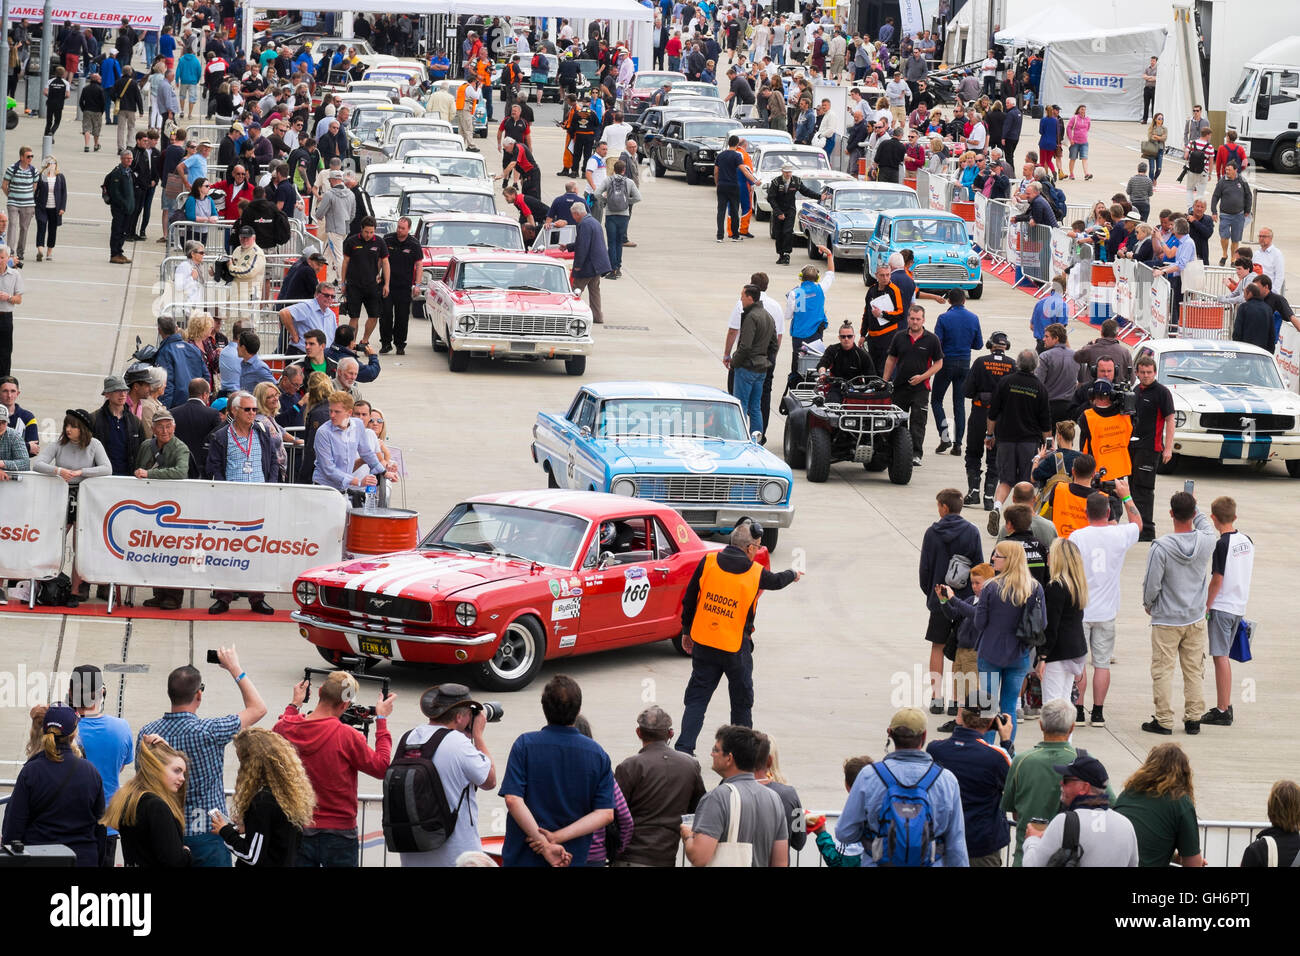 Pre-1966 Big Engined Touring Cars in the paddock at the 2016 Silverstone Classic event, England, UK - Stock Image